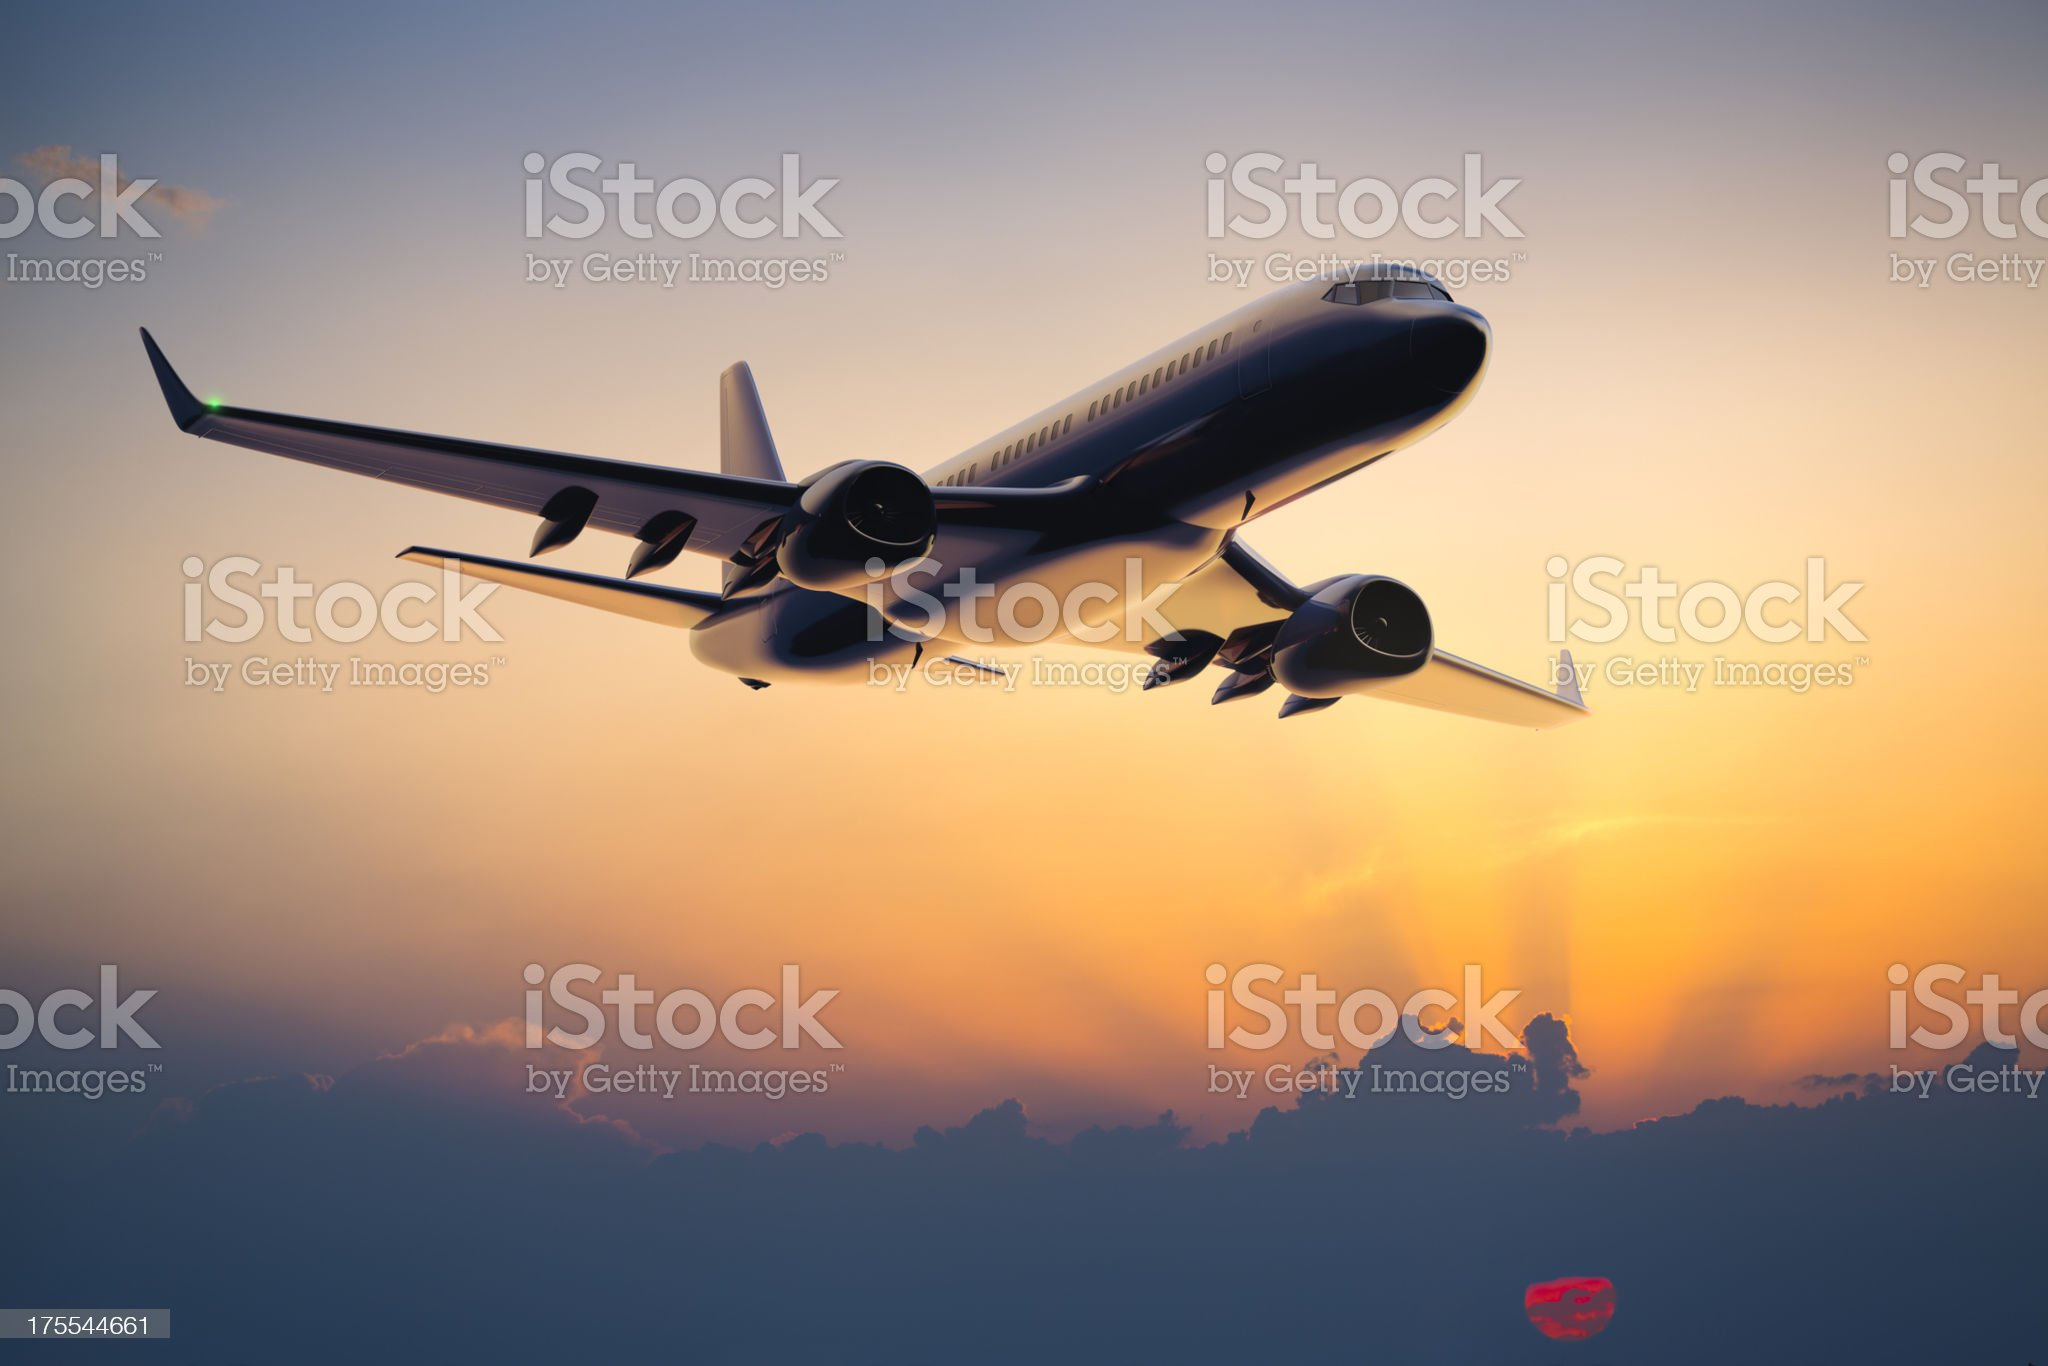 Night flight of a passenger jet airplane royalty-free stock photo